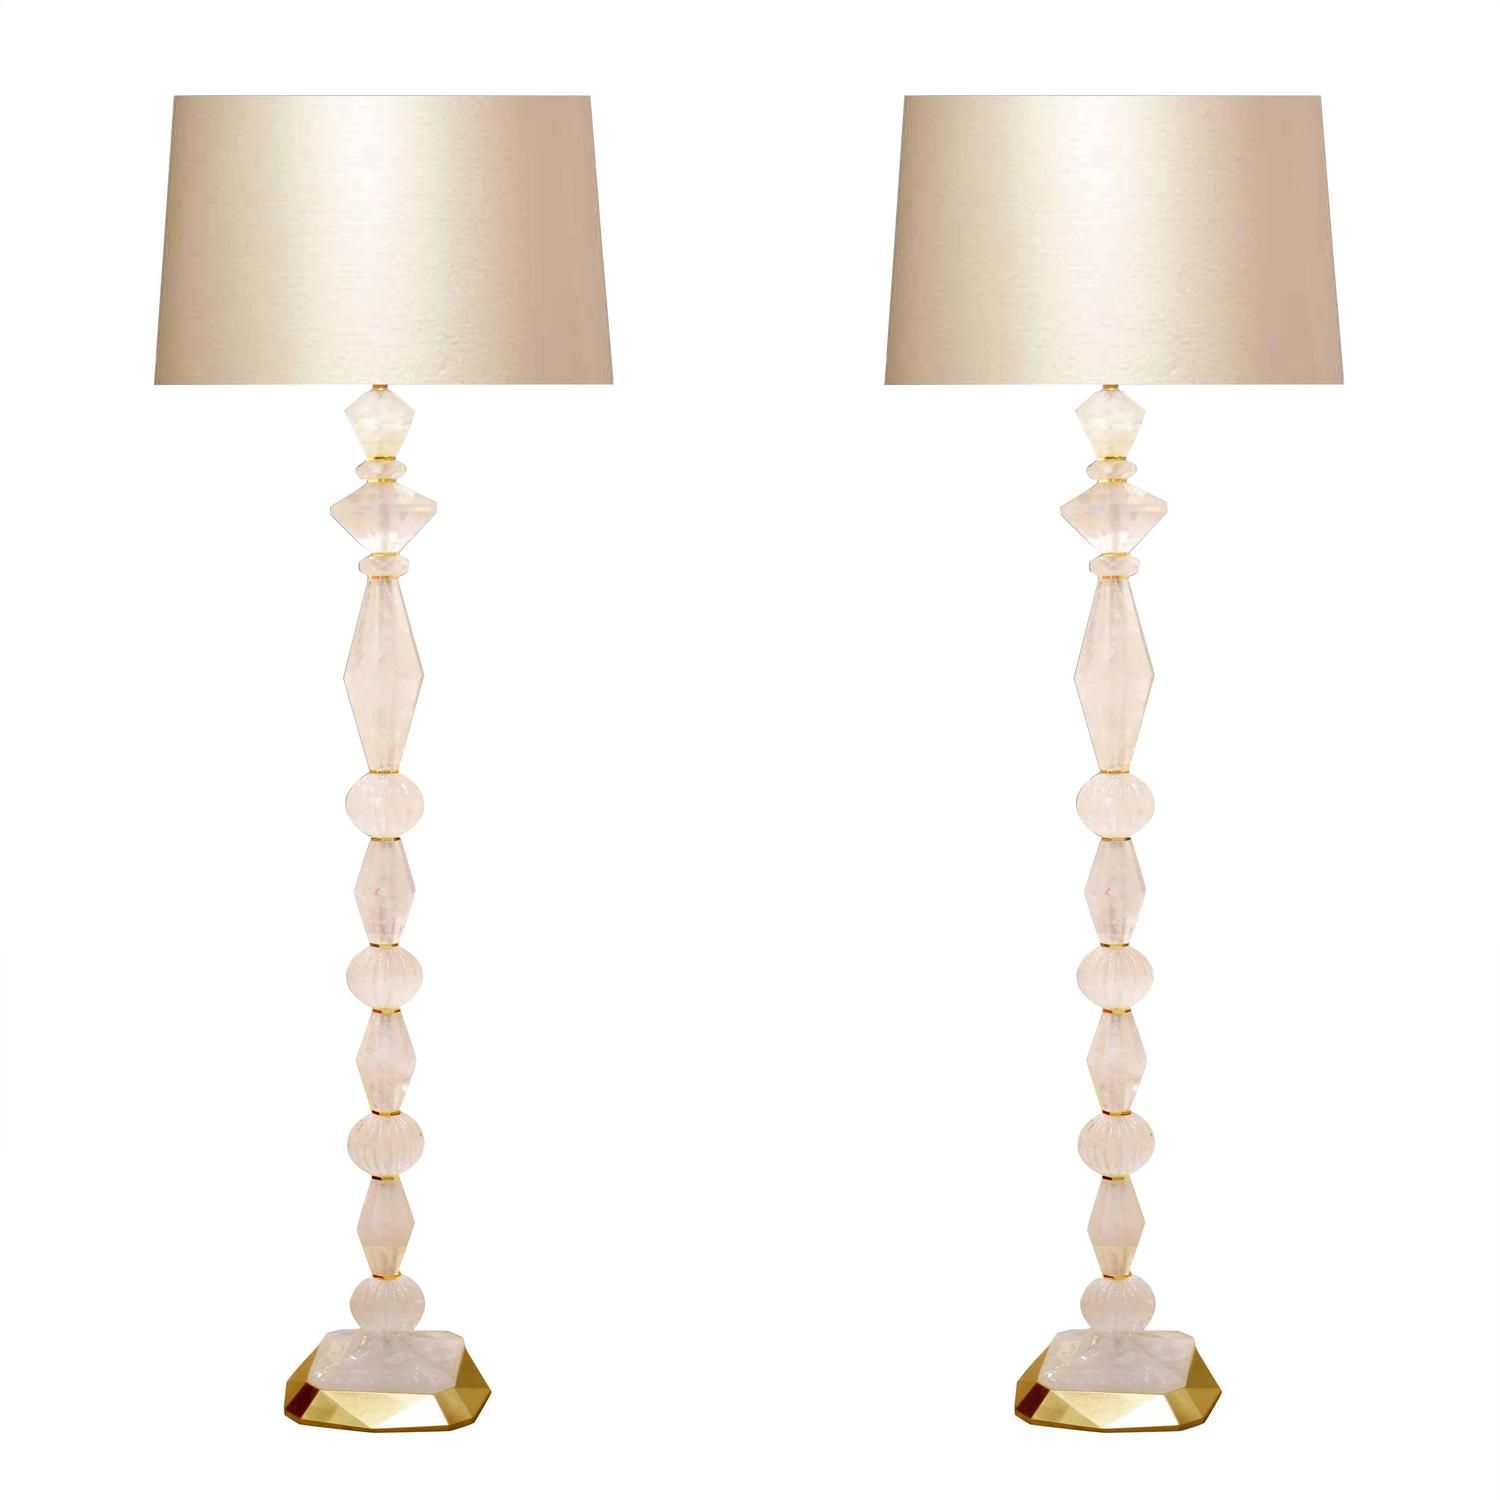 fine carved rock crystal quartz floor lamps for sale at 1stdibs. Black Bedroom Furniture Sets. Home Design Ideas